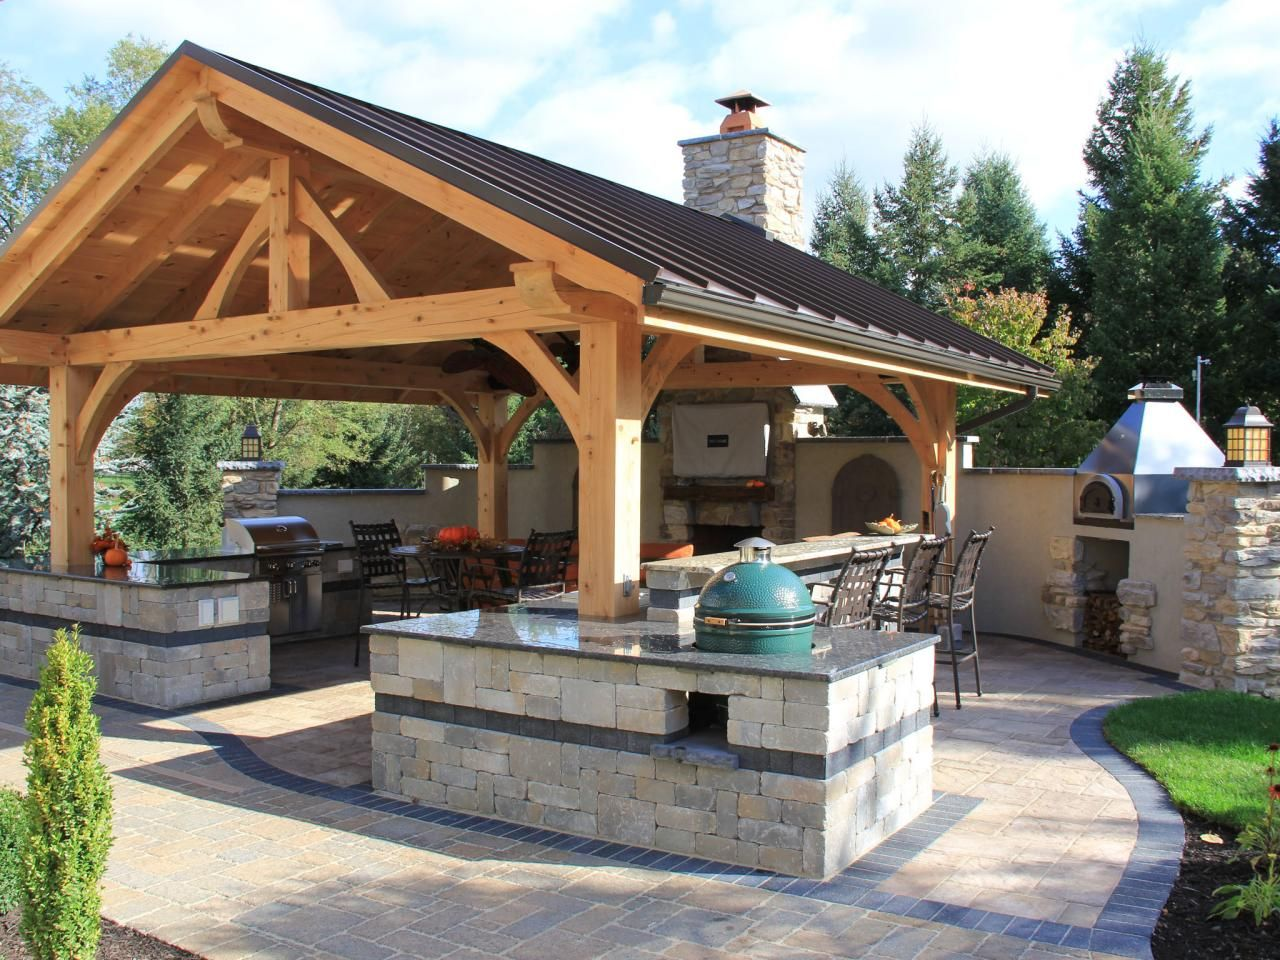 Rustic covered outdoor kitchen with bar hgtv home ideas